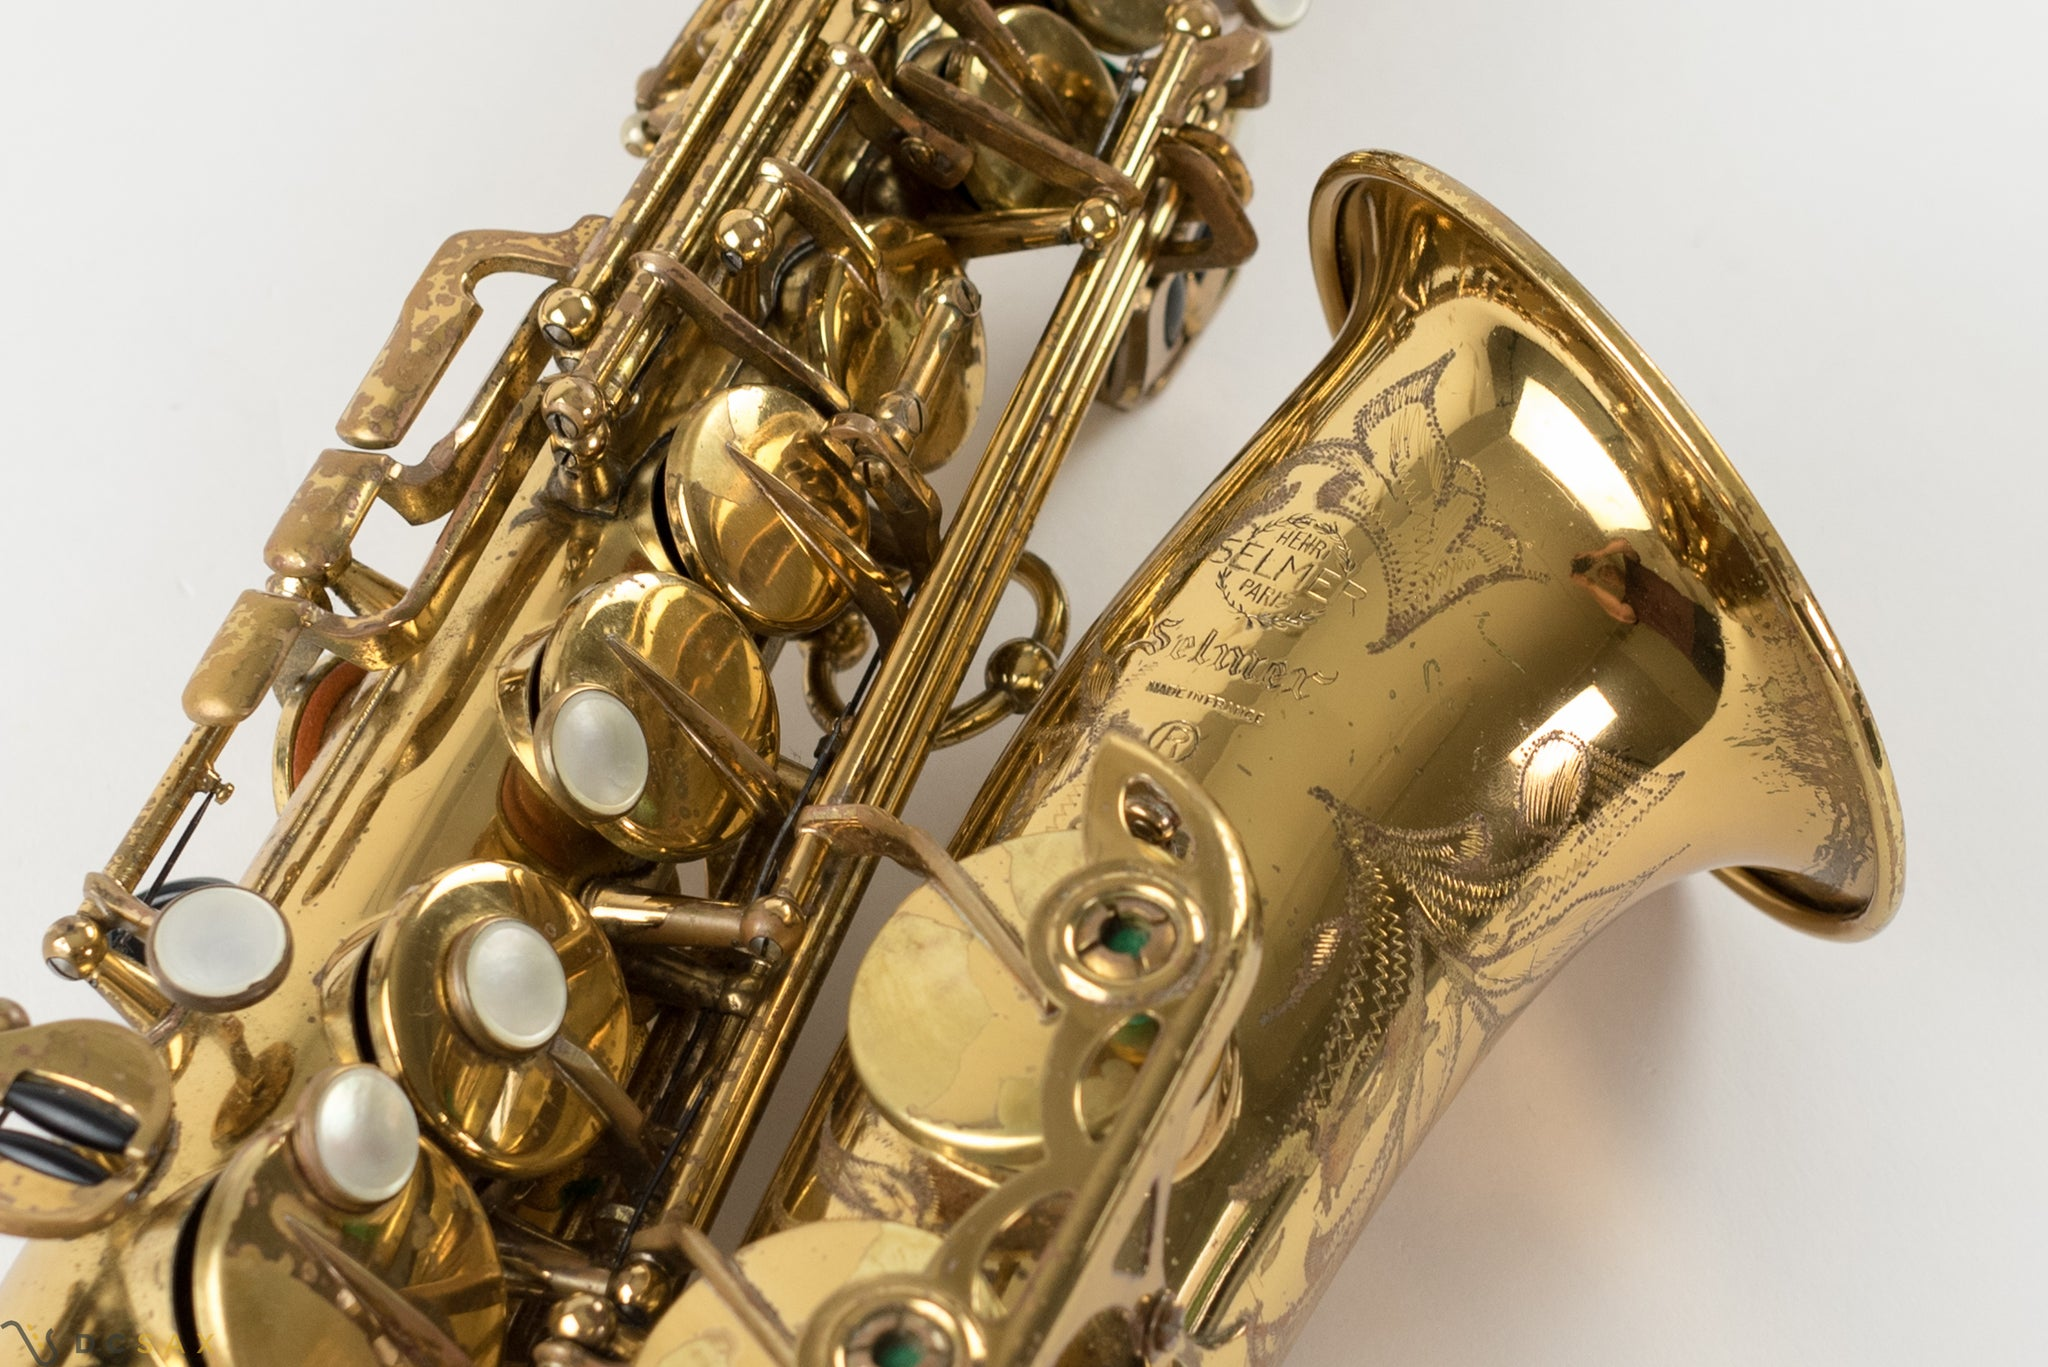 238,xxx Selmer Mark VI Alto Saxophone, 94% Original Lacquer, Just Serviced, Video